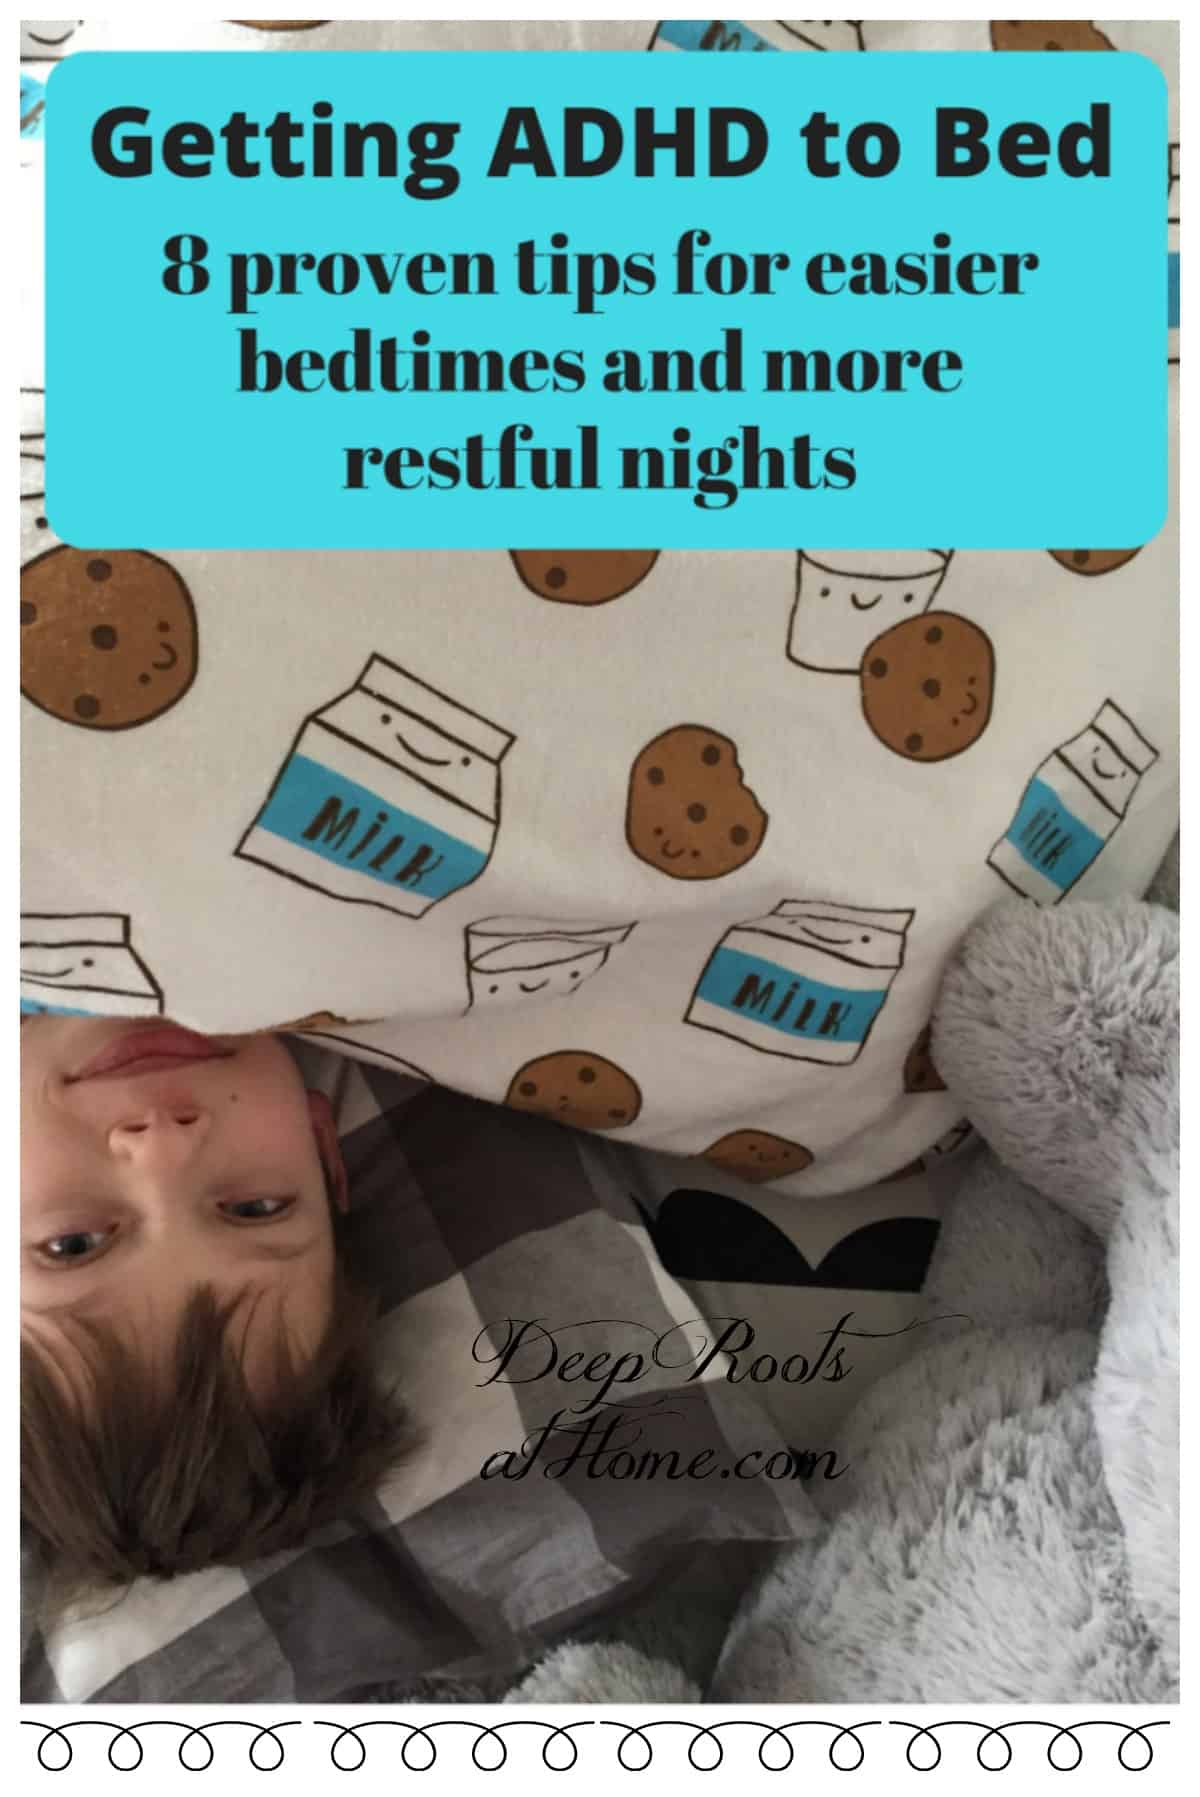 Getting ADHD to Bed: 8 Proven Tips for Bedtime & Quieter Nights. A 8-9 year old boy in bed